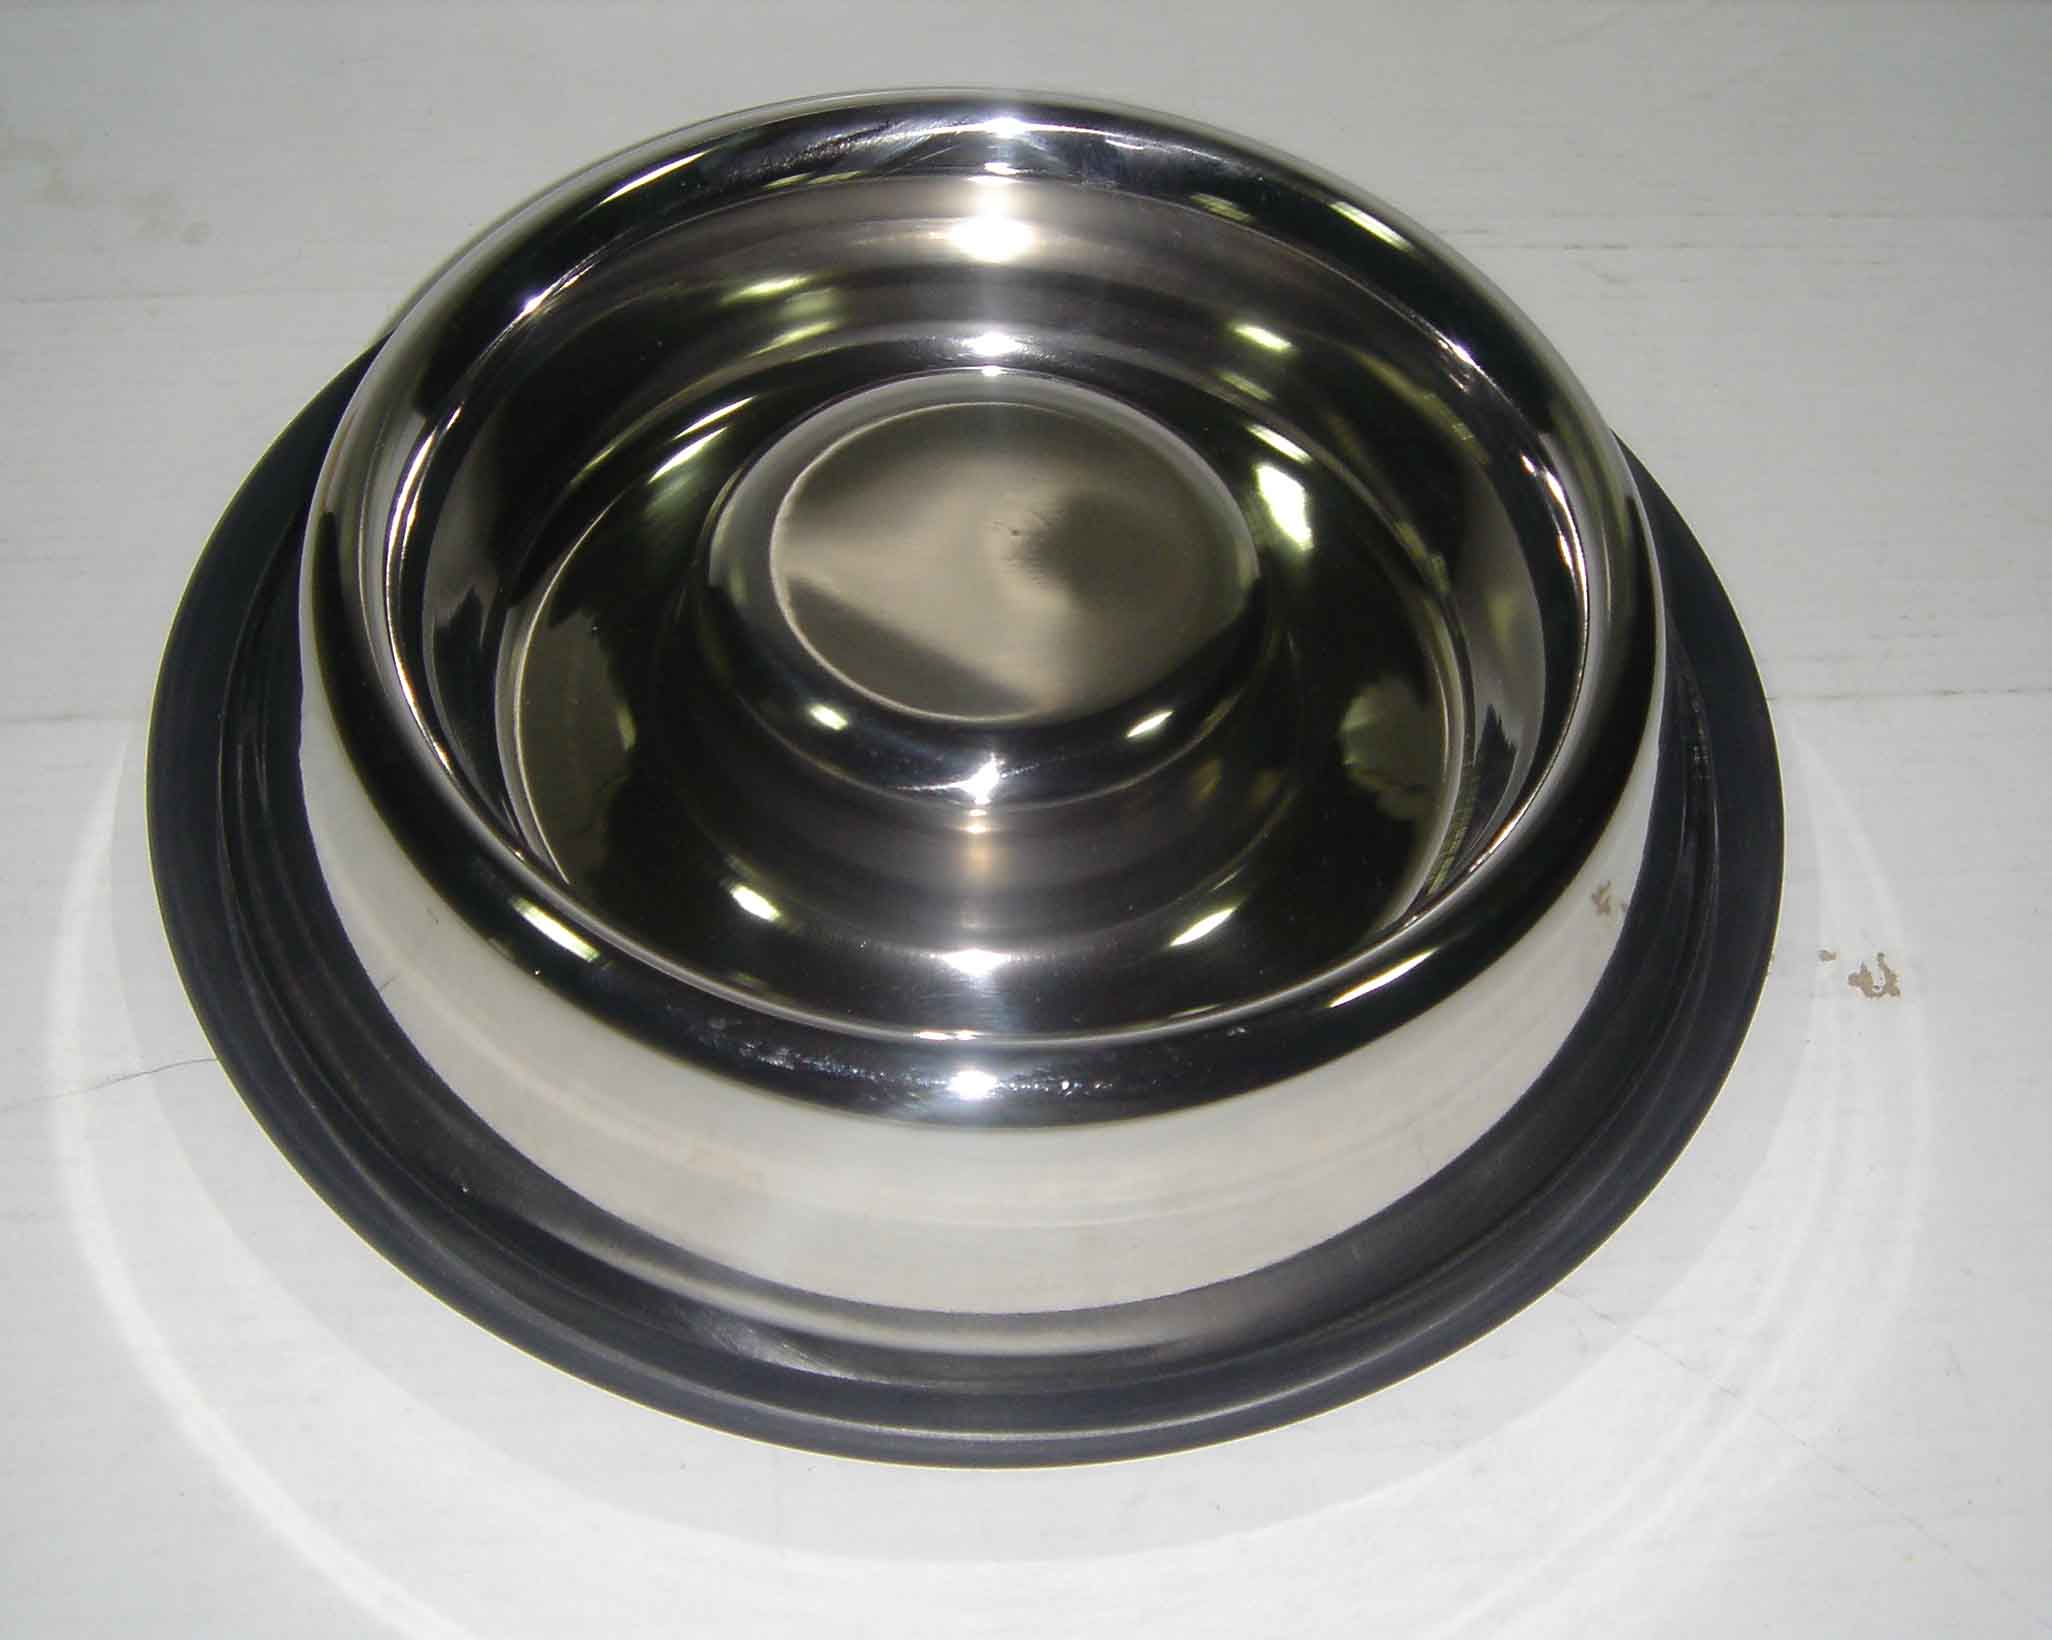 Antiskid Slow feeding bowl